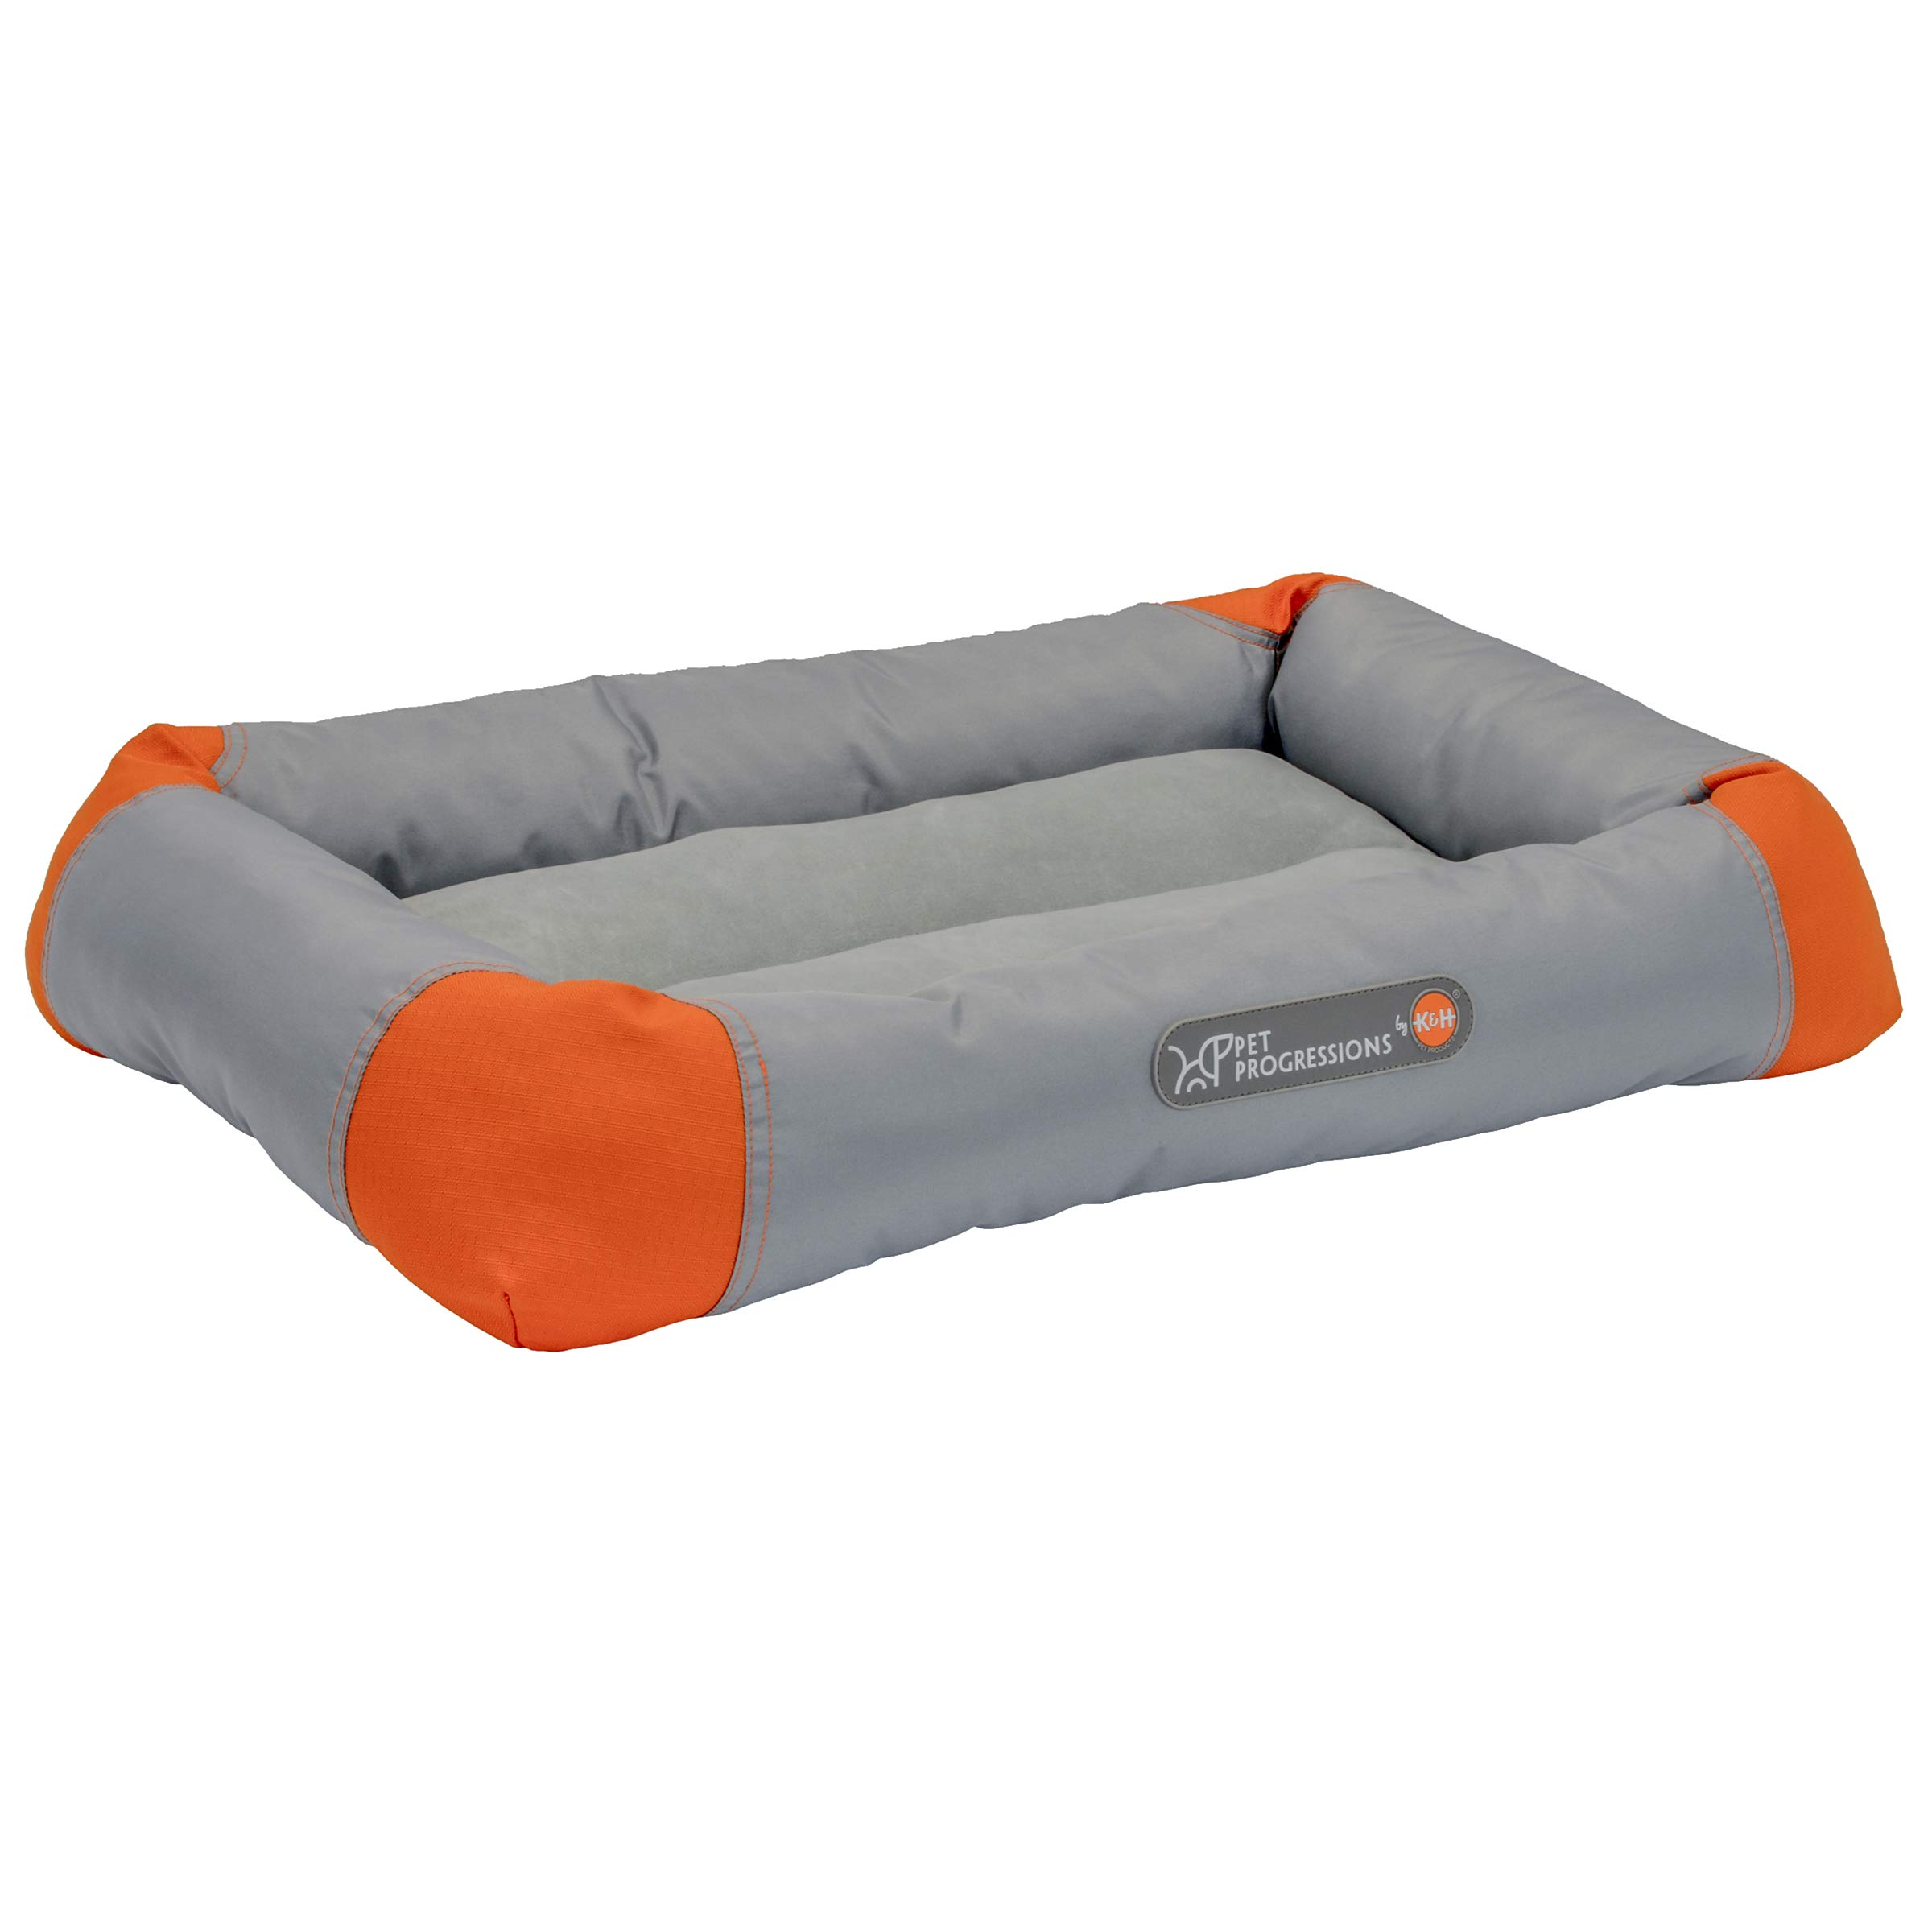 Pet Progressions by K&H Waterproof Puppy Bolster Pet Pad Small Grey - Piddle Proof, Stain & Odor Resistant, and Tear Resistant for Puppies & Adult Dogs by Pet Progressions (Image #3)